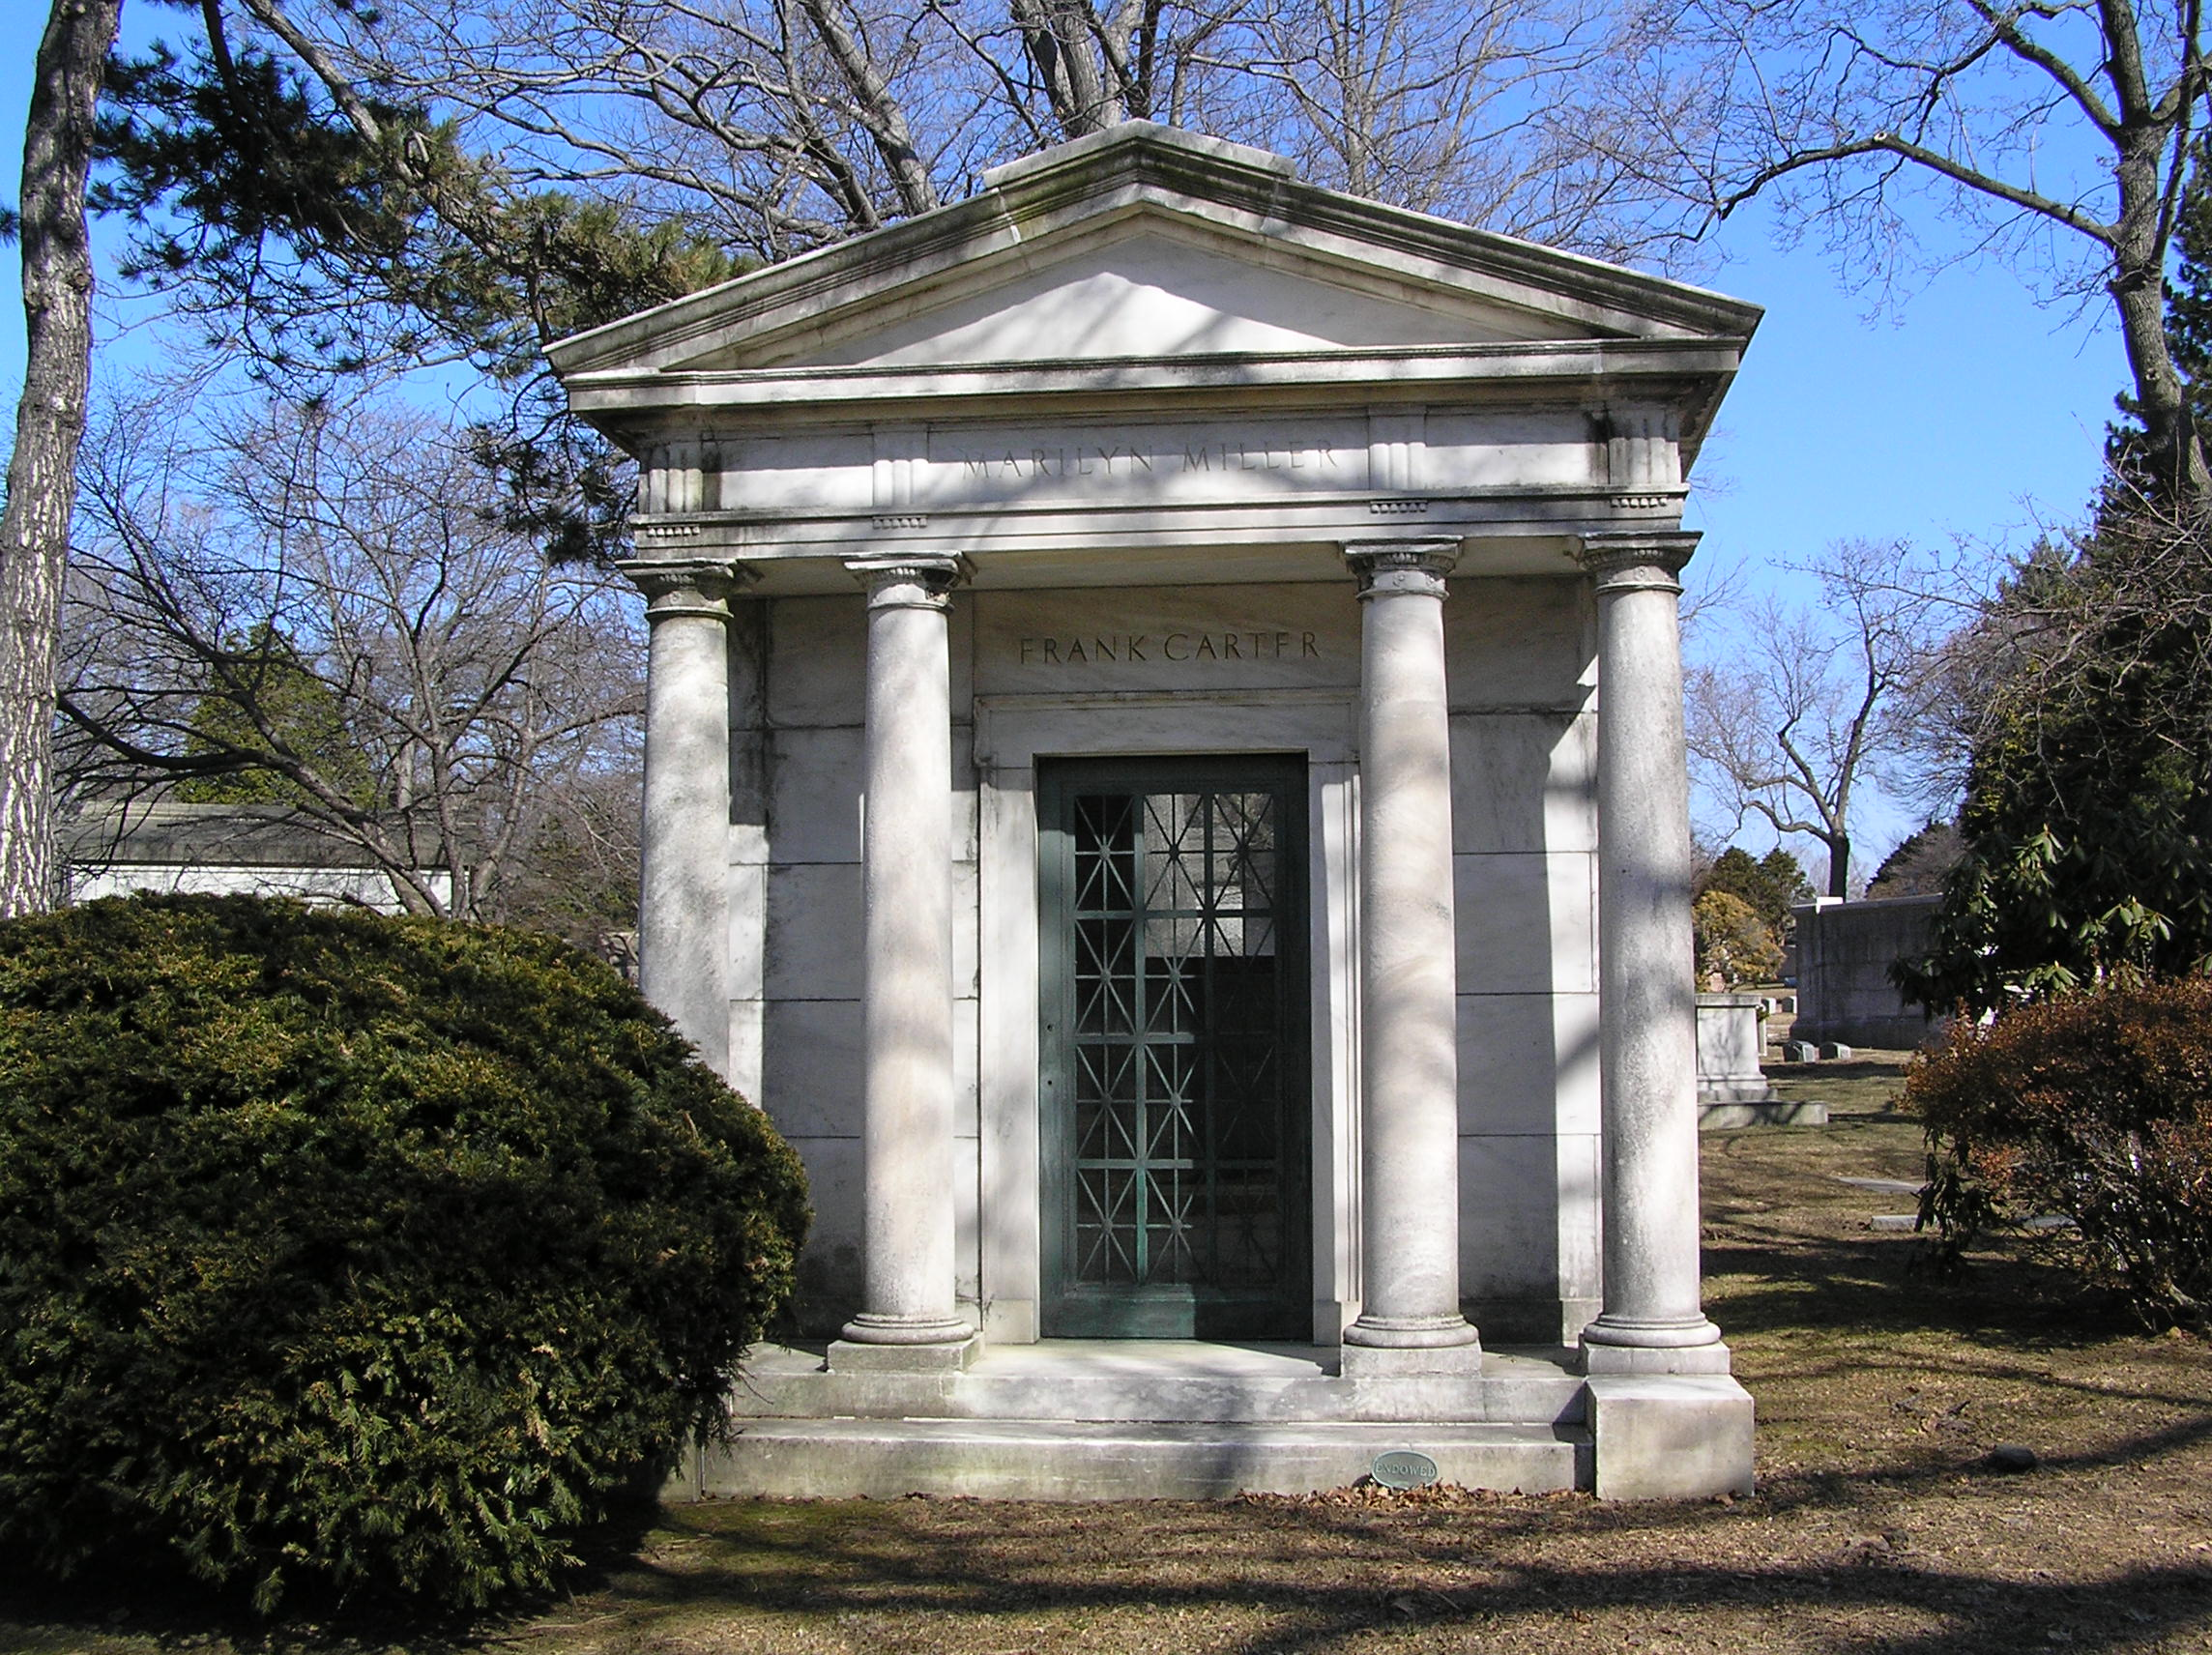 File:Mausoleum of Marilyn Miller.JPG - Wikimedia Commons